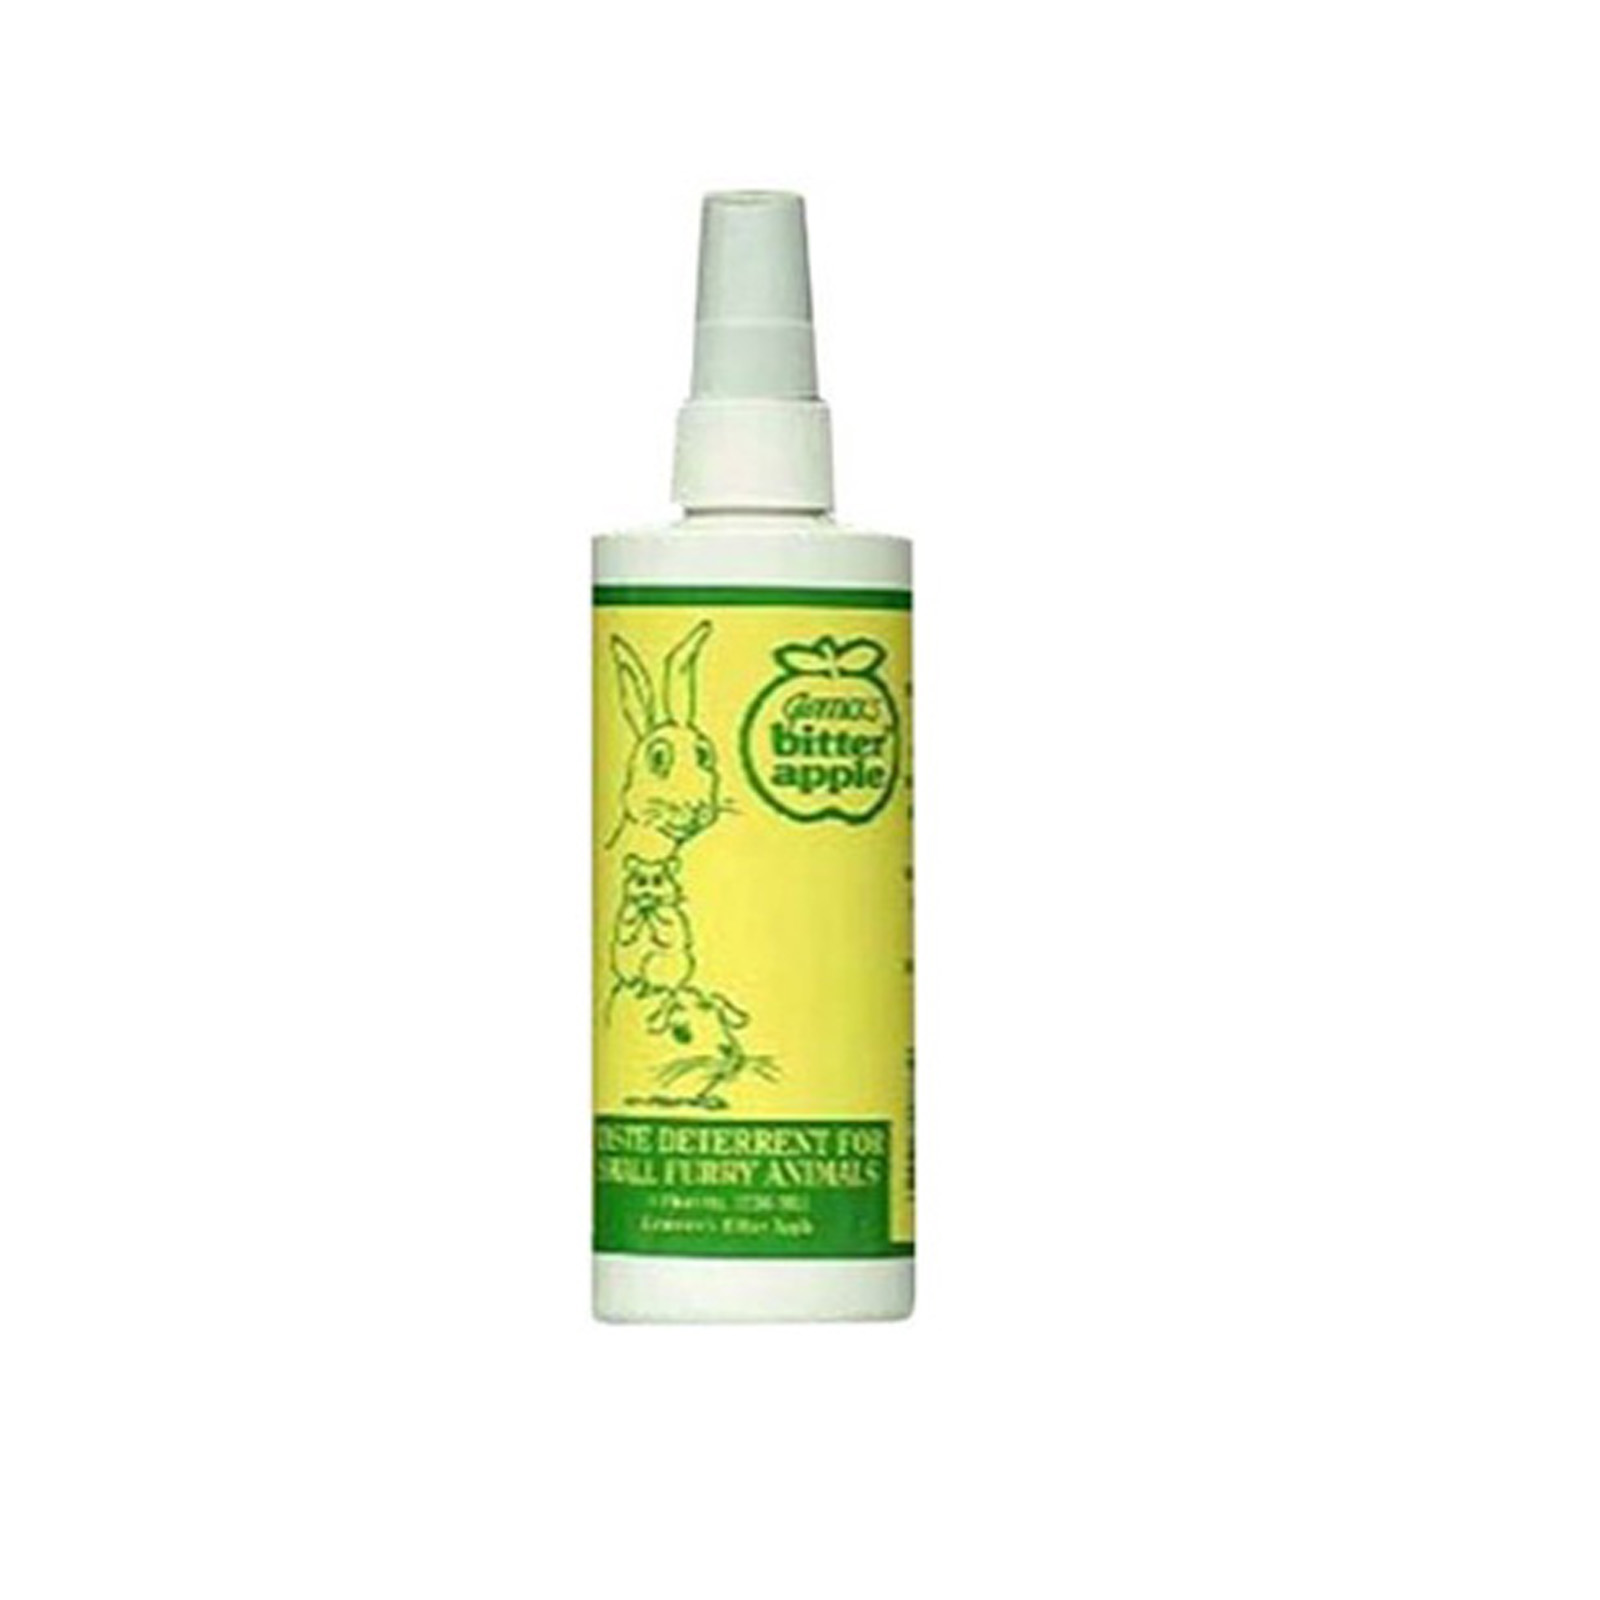 Gba Bitter Apple Spray Small Animal 8 oz.